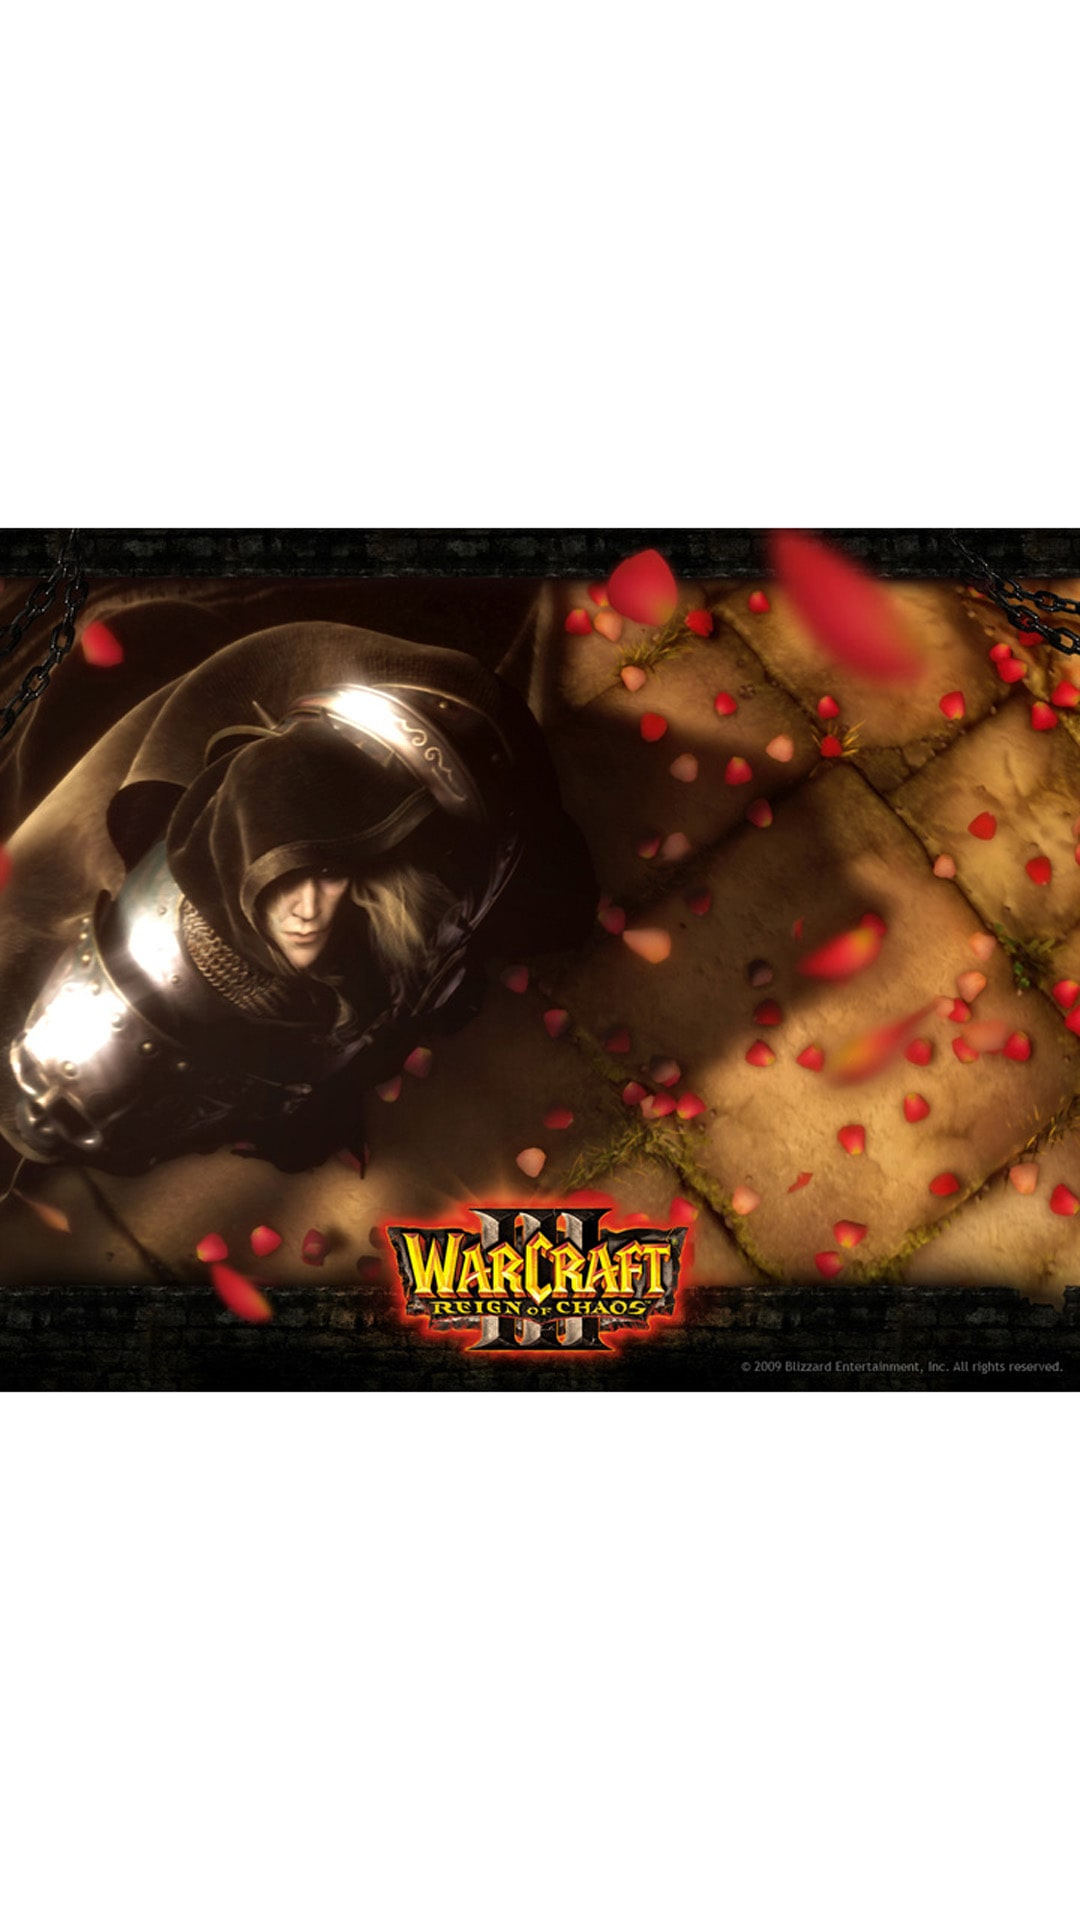 Warcraft 3 Reign of Chaos Cd Key Global For PC